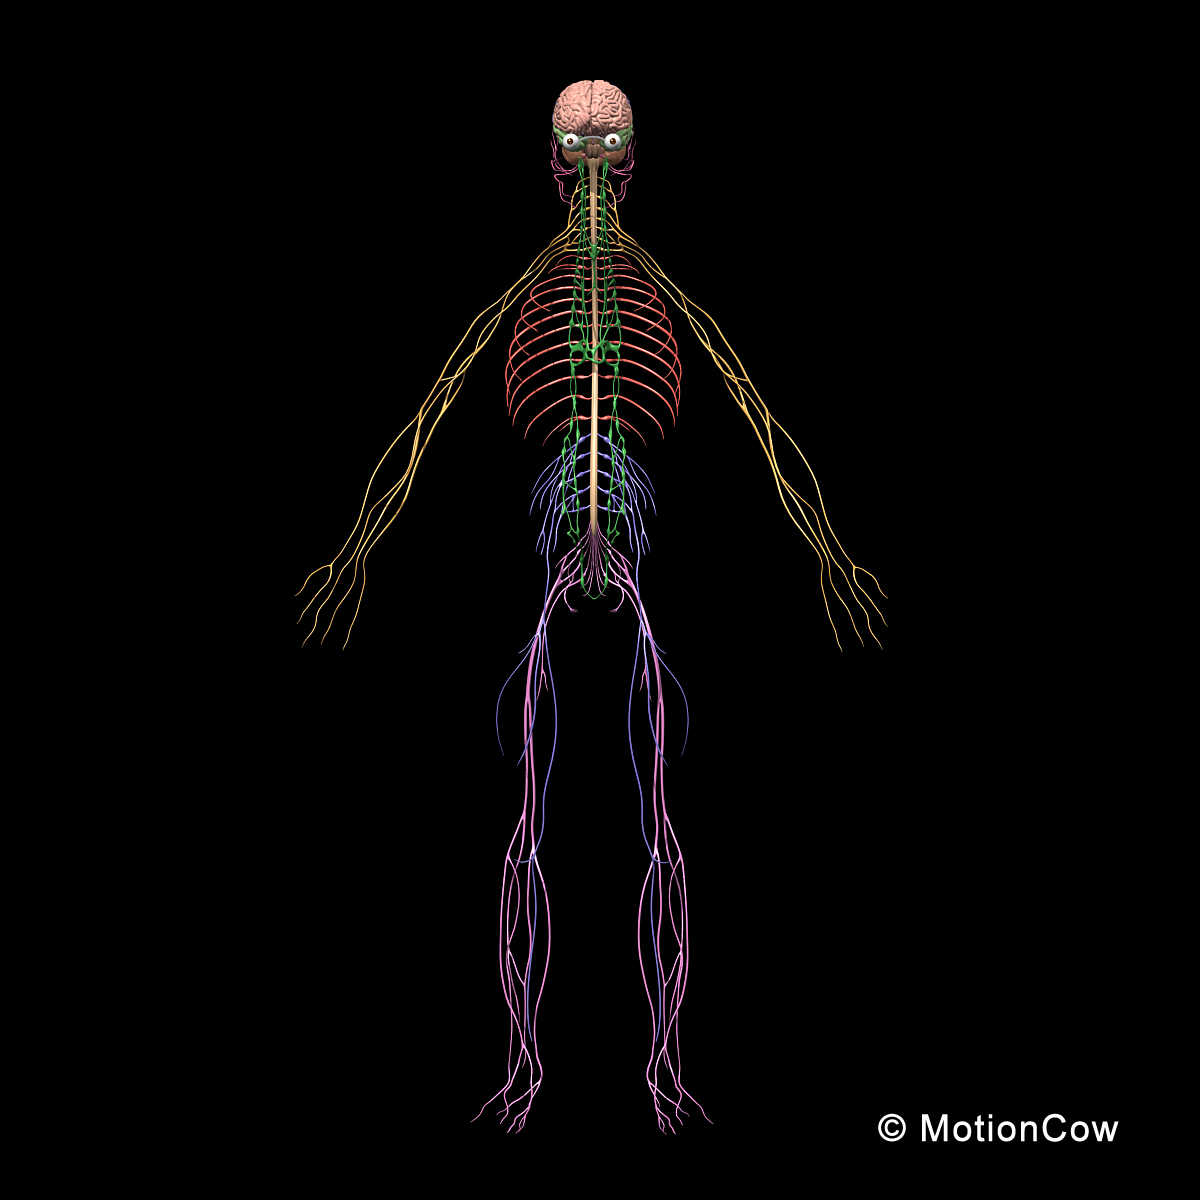 Skeleton Amp Nervous System Motioncow